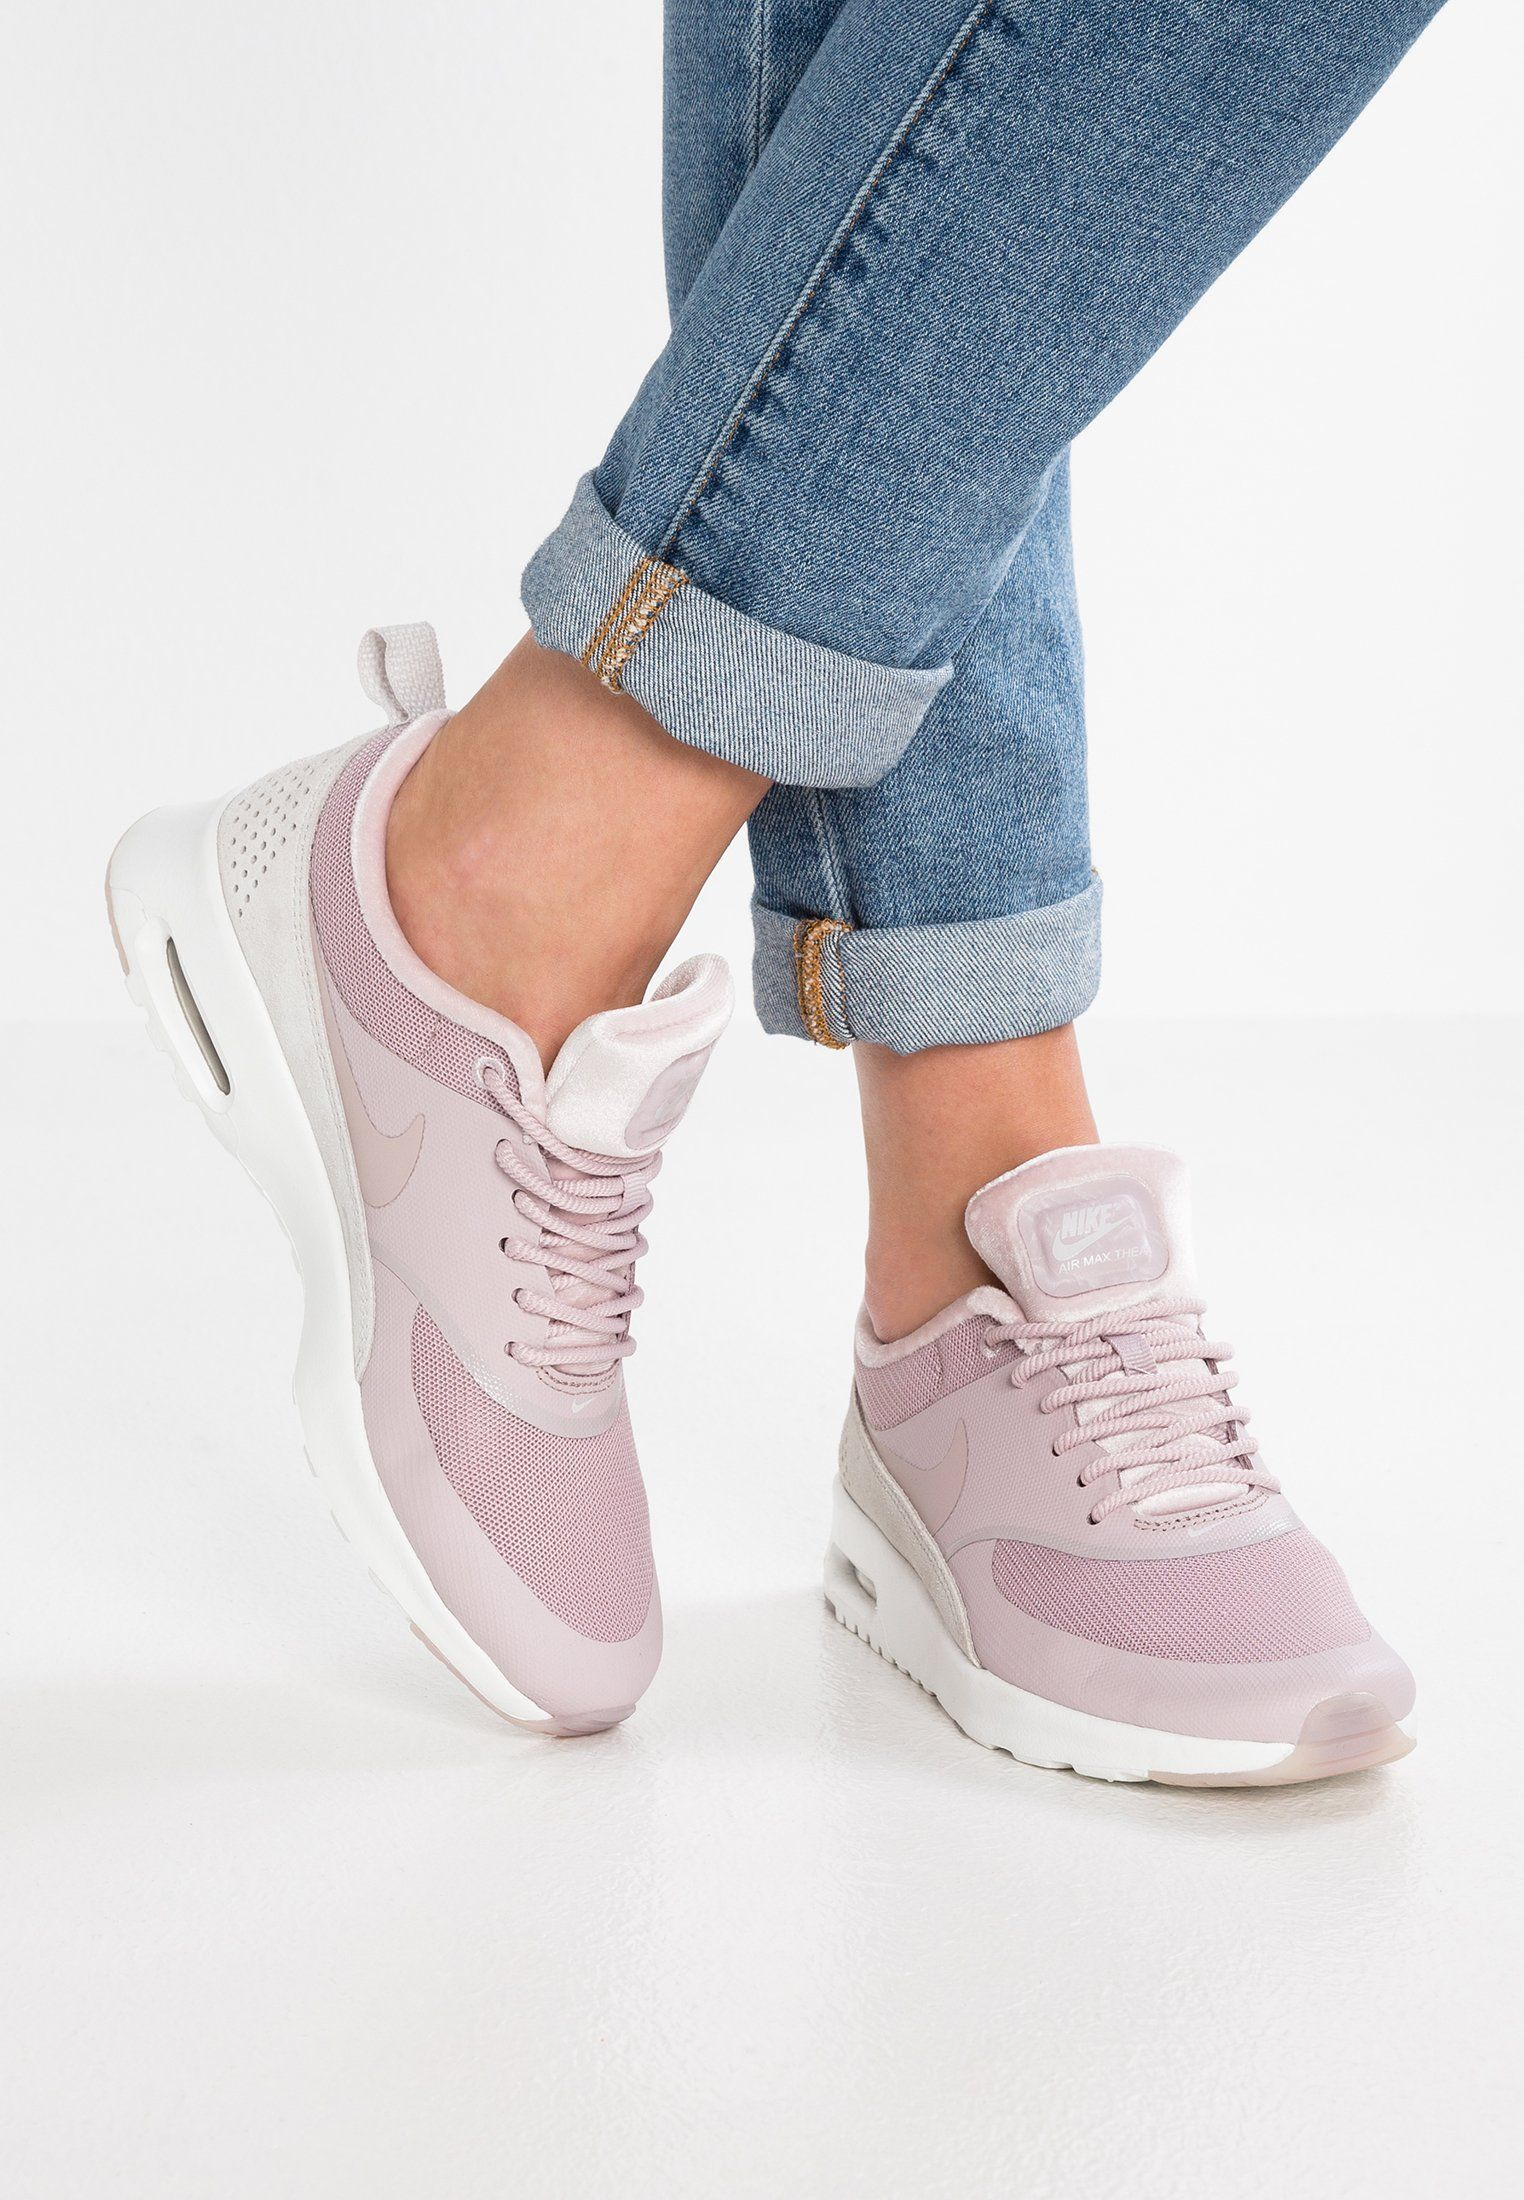 tira Intolerable profundo  Nike Sportswear AIR MAX THEA LX - Trainers - particle rose/vast grey -  Zalando.co.uk | Air max thea, Sneakers, Nike air thea